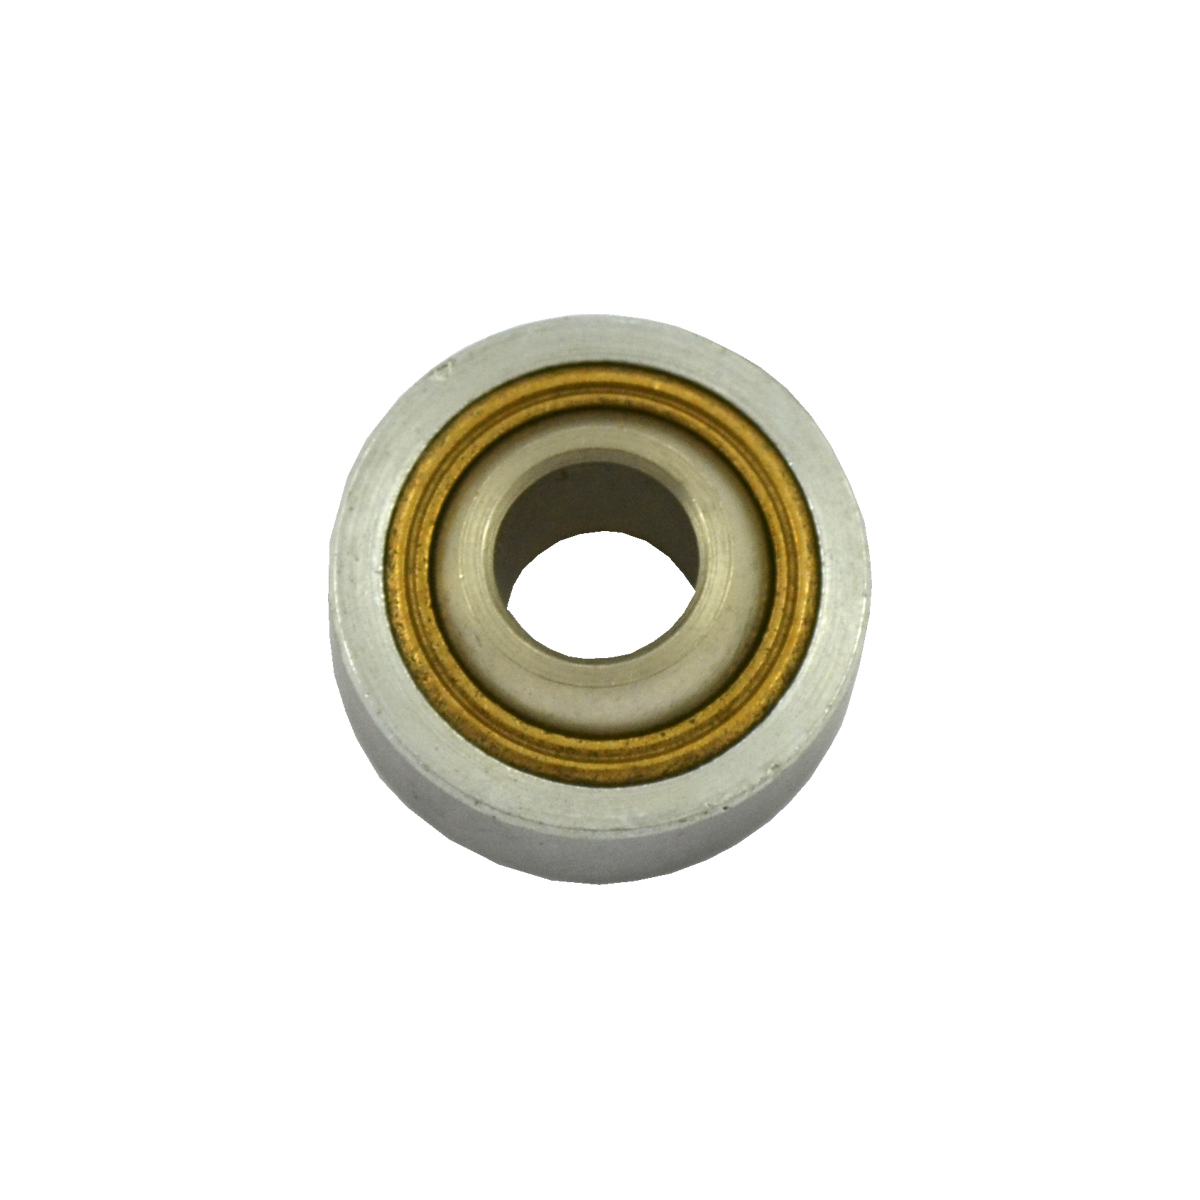 000-029-614 Unibal Bearing